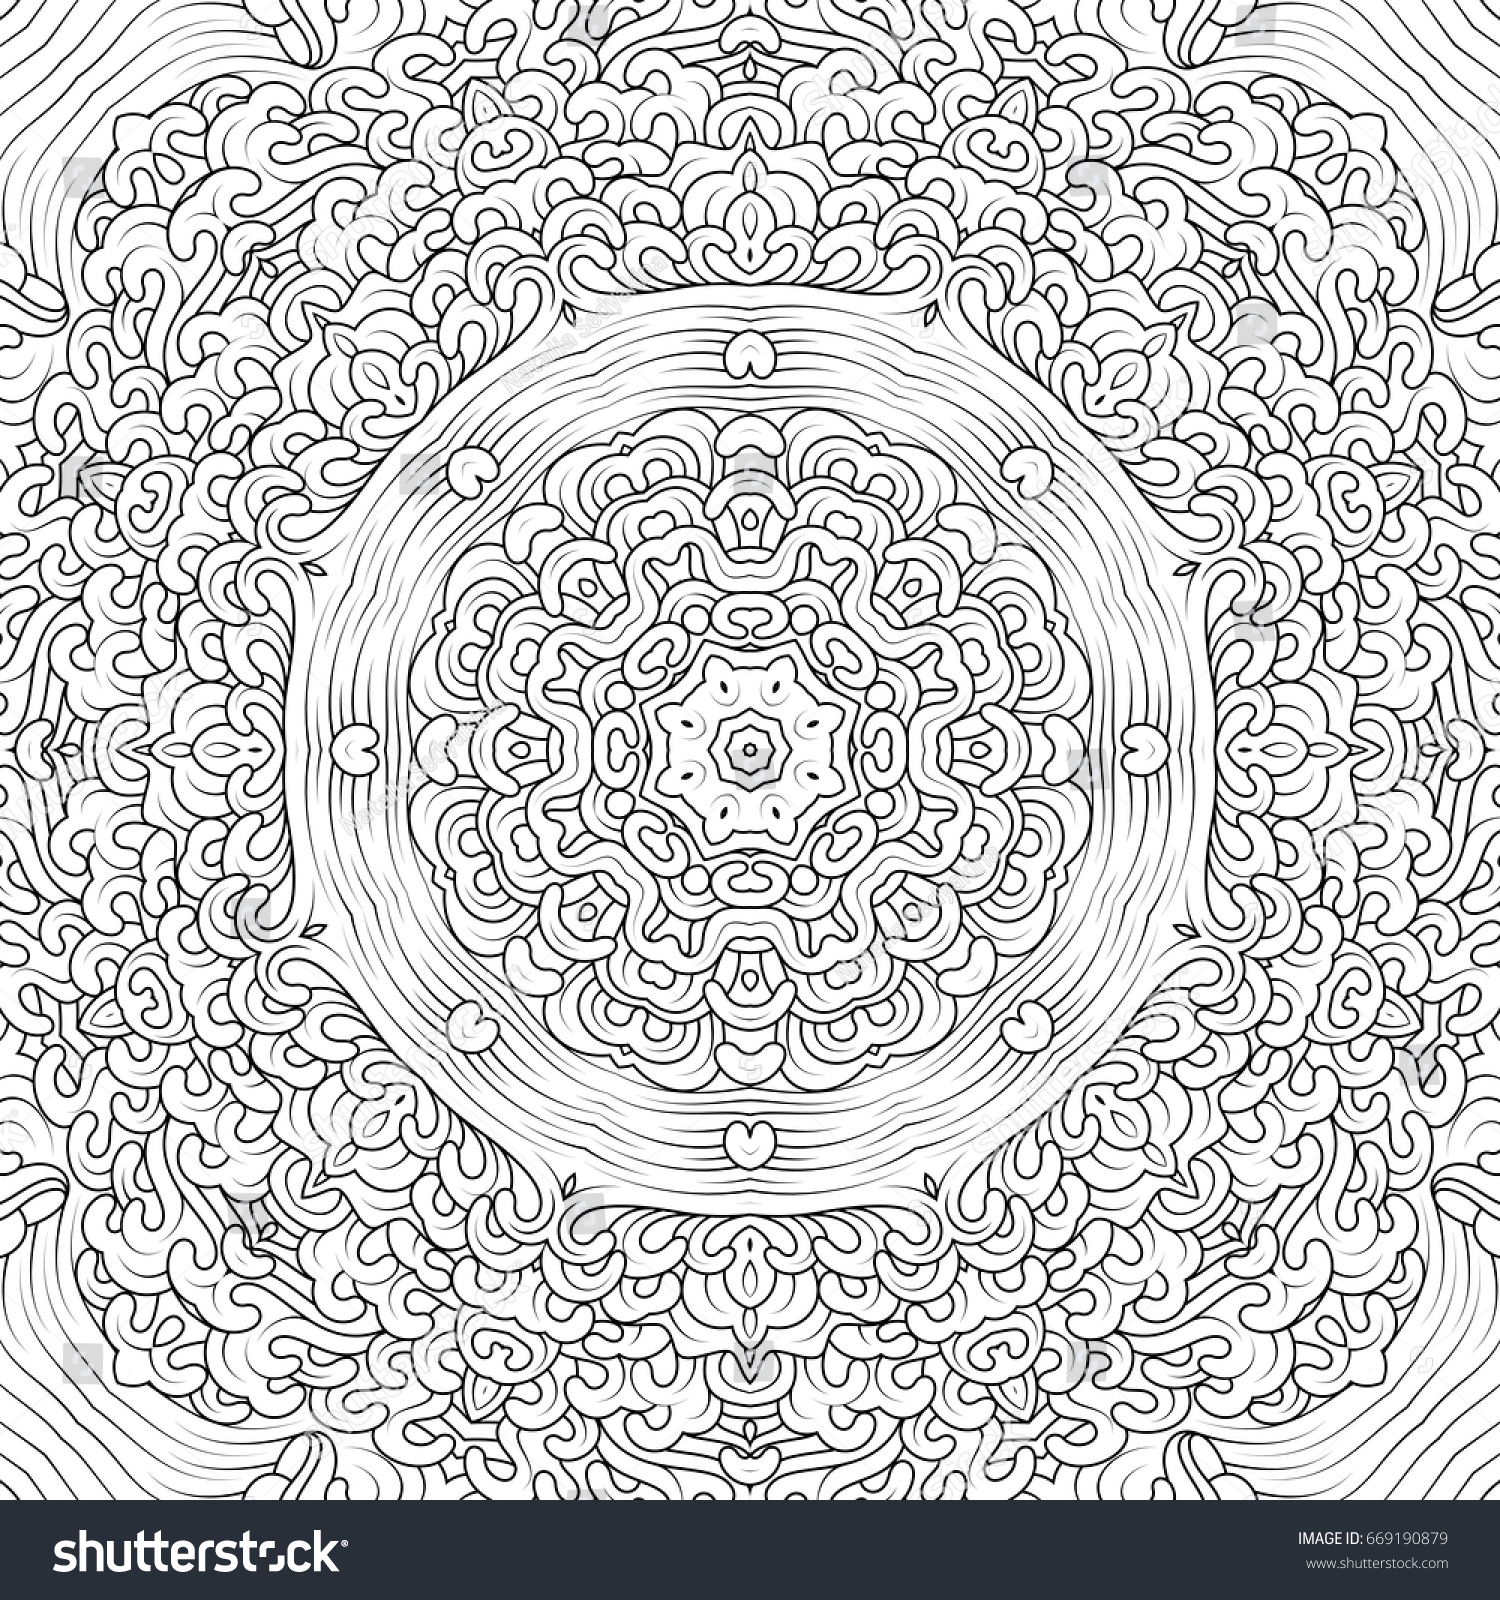 Monochrome Contour Mandala In Tibetan Iconography Style Adult Coloring Books Design Vector